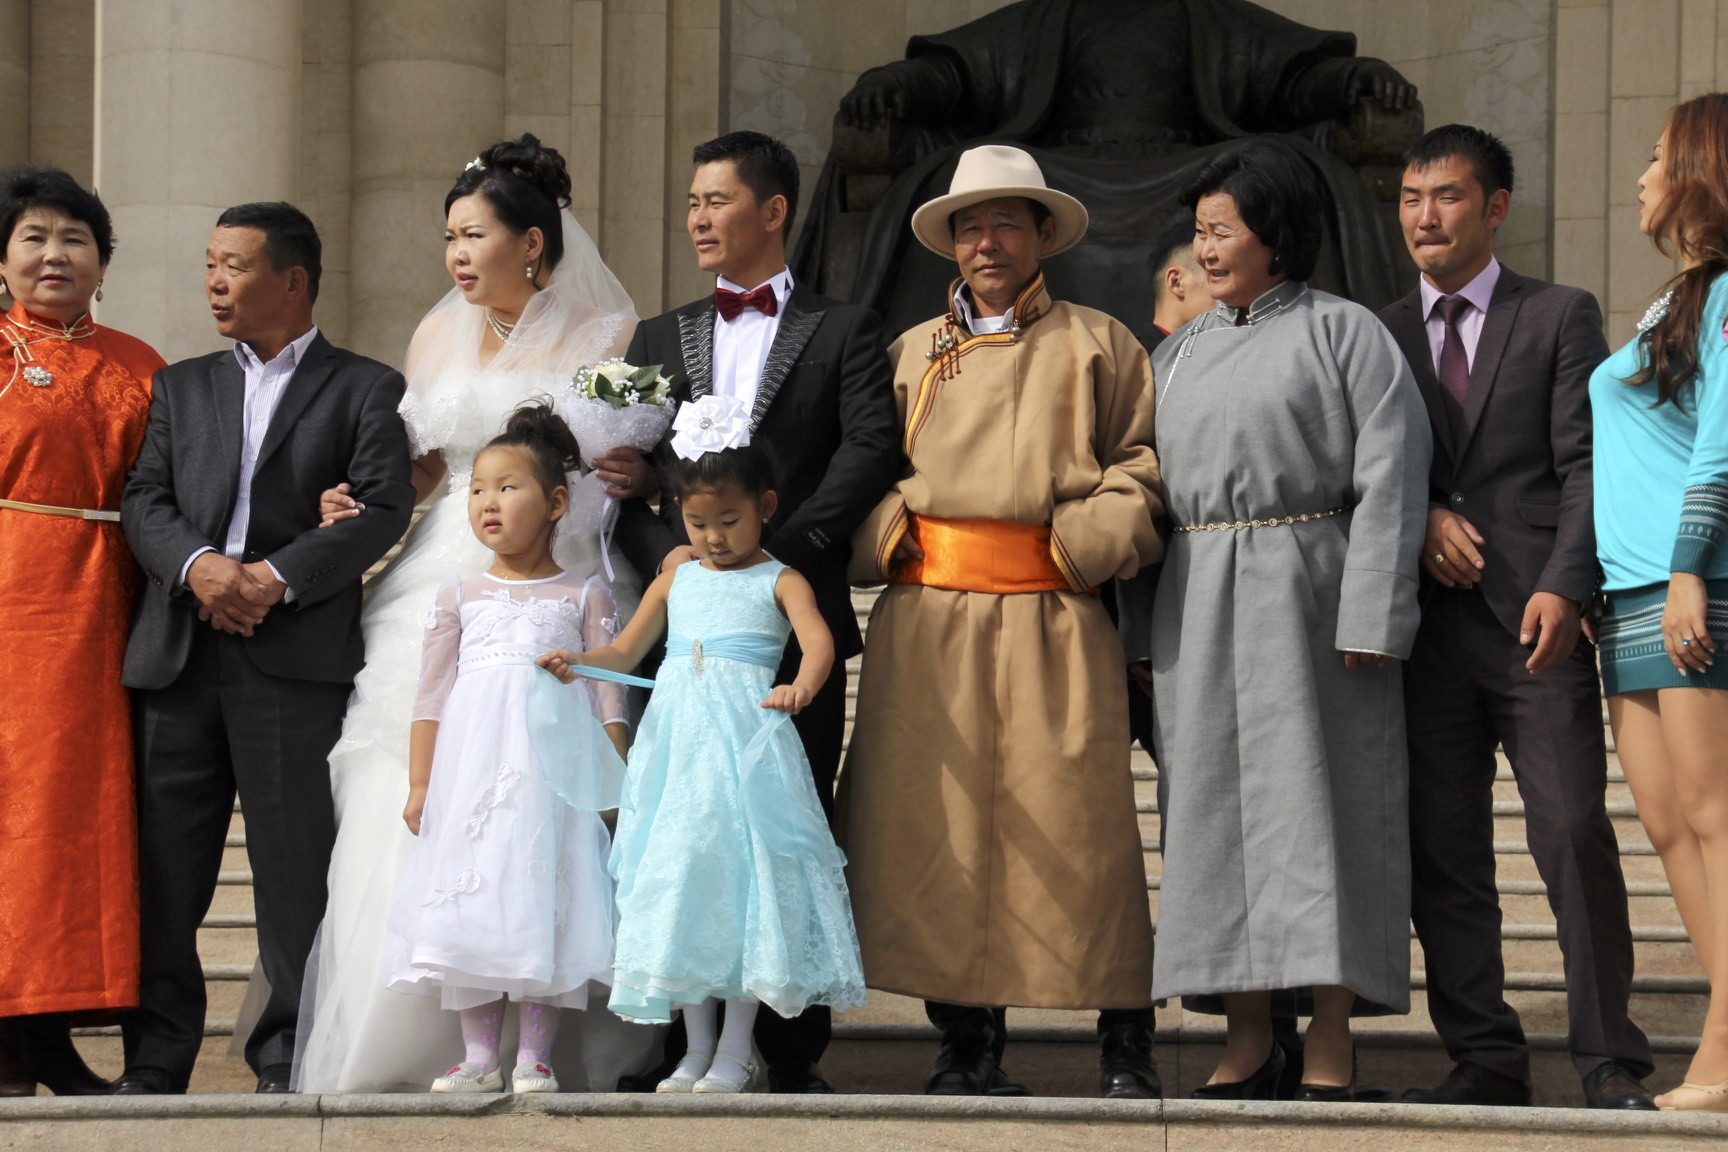 Mongolian wedding - dressed in their finest